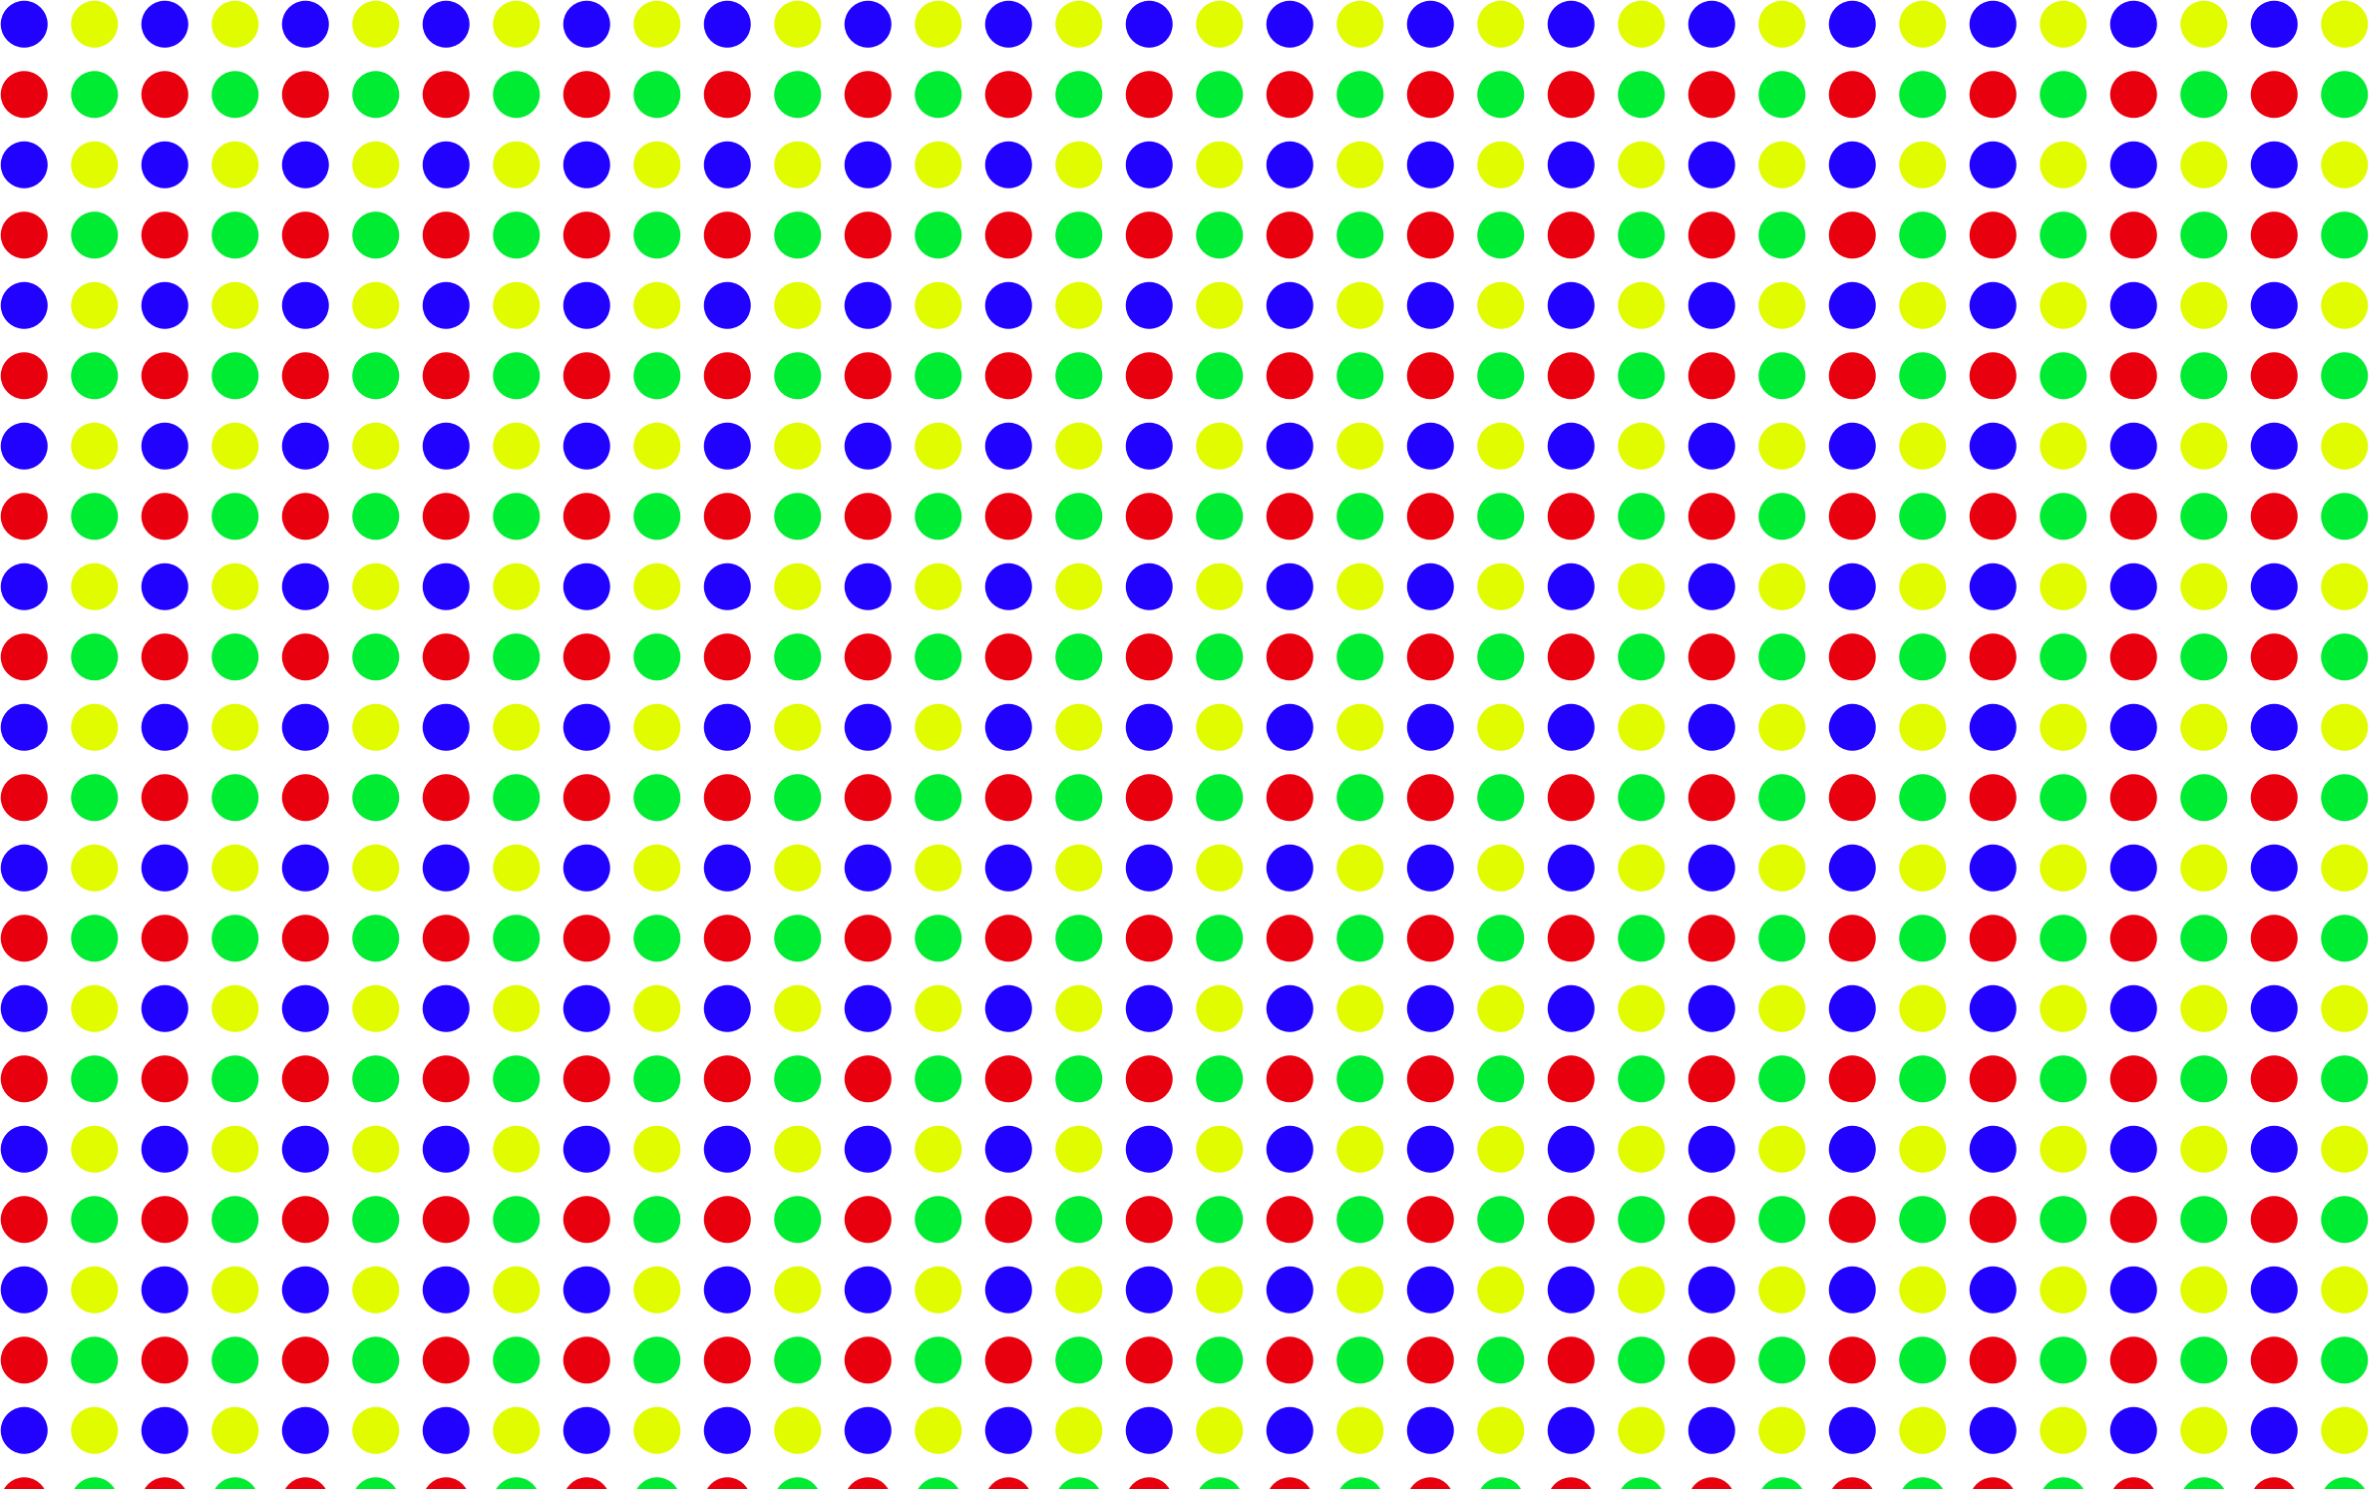 Polka dot pattern png. Seamless colorful tightly packed